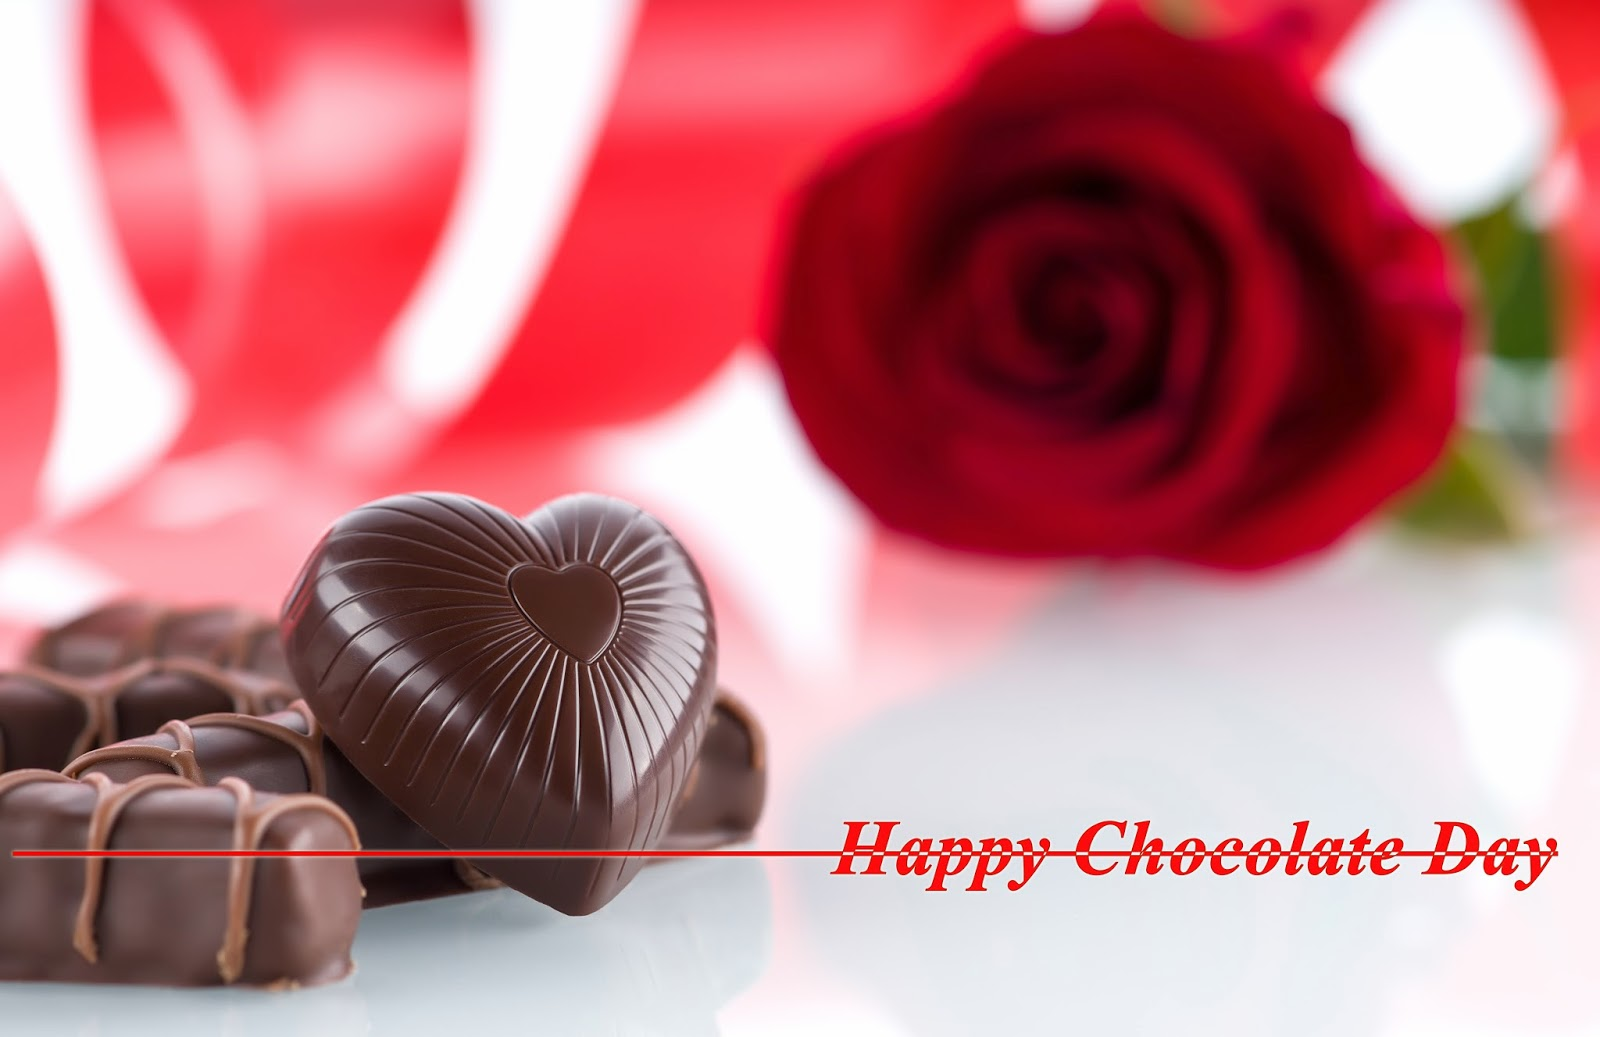 Happy Chocolate Day Wallpapers Hd